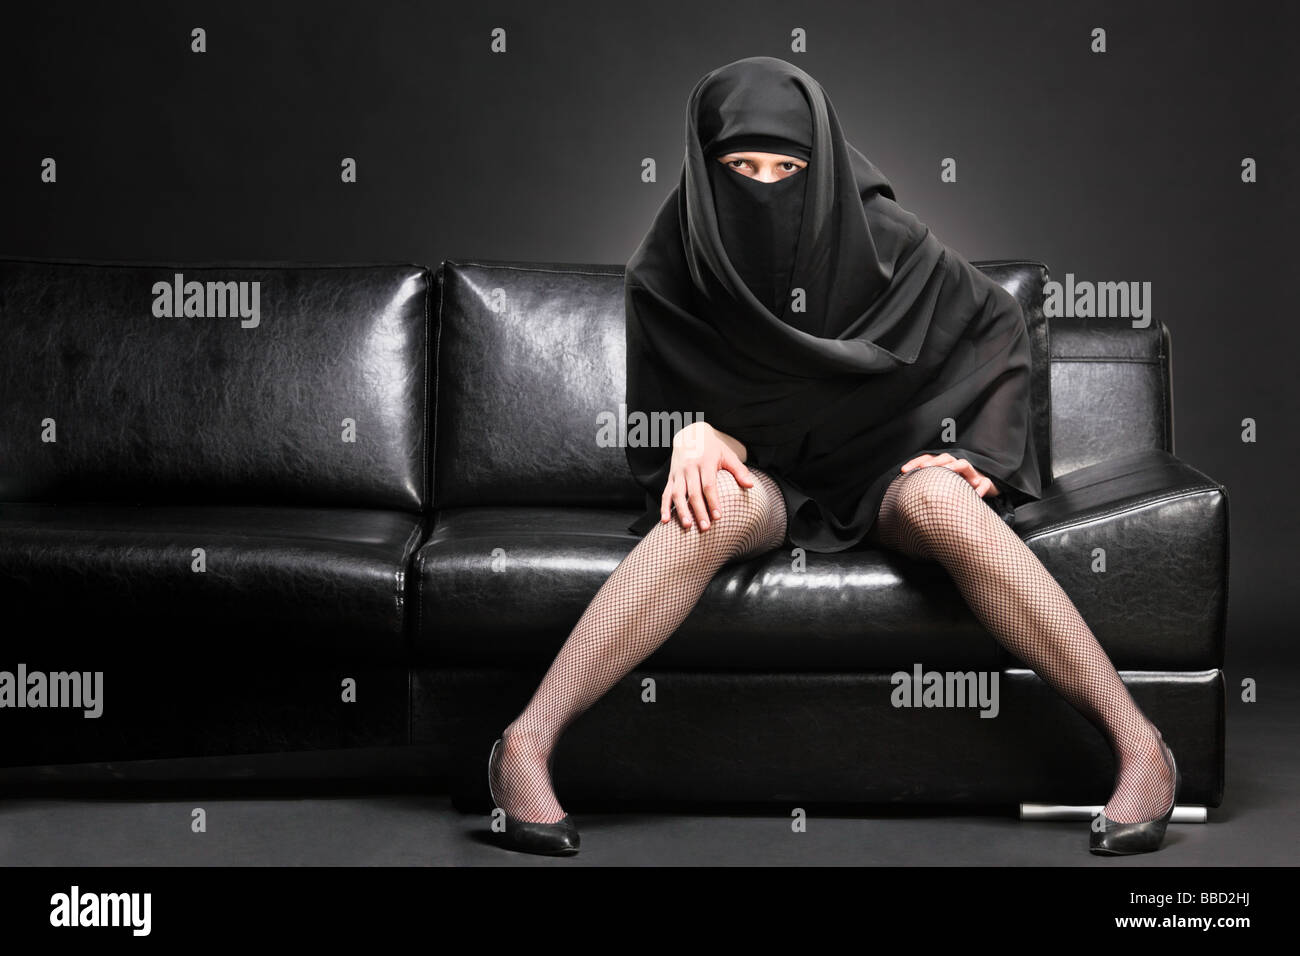 Arabic woman on a sofa Stock Photo